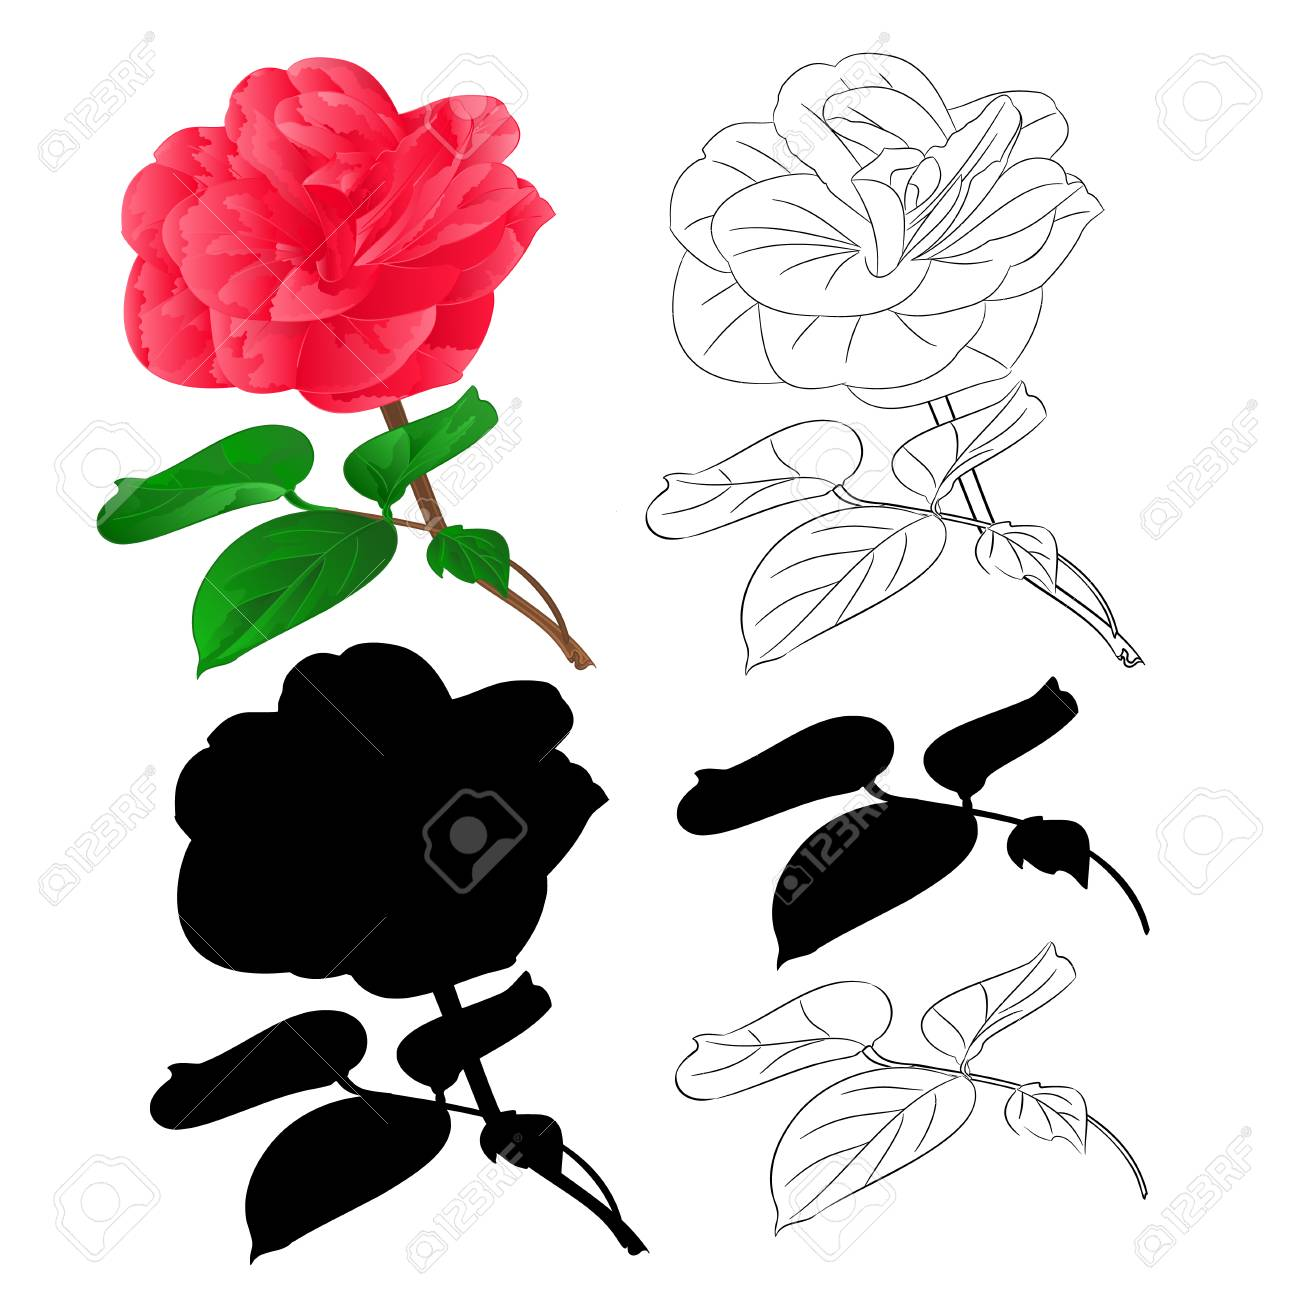 Flower Camellia Japonica With Buds Natural Outline And Silhouette